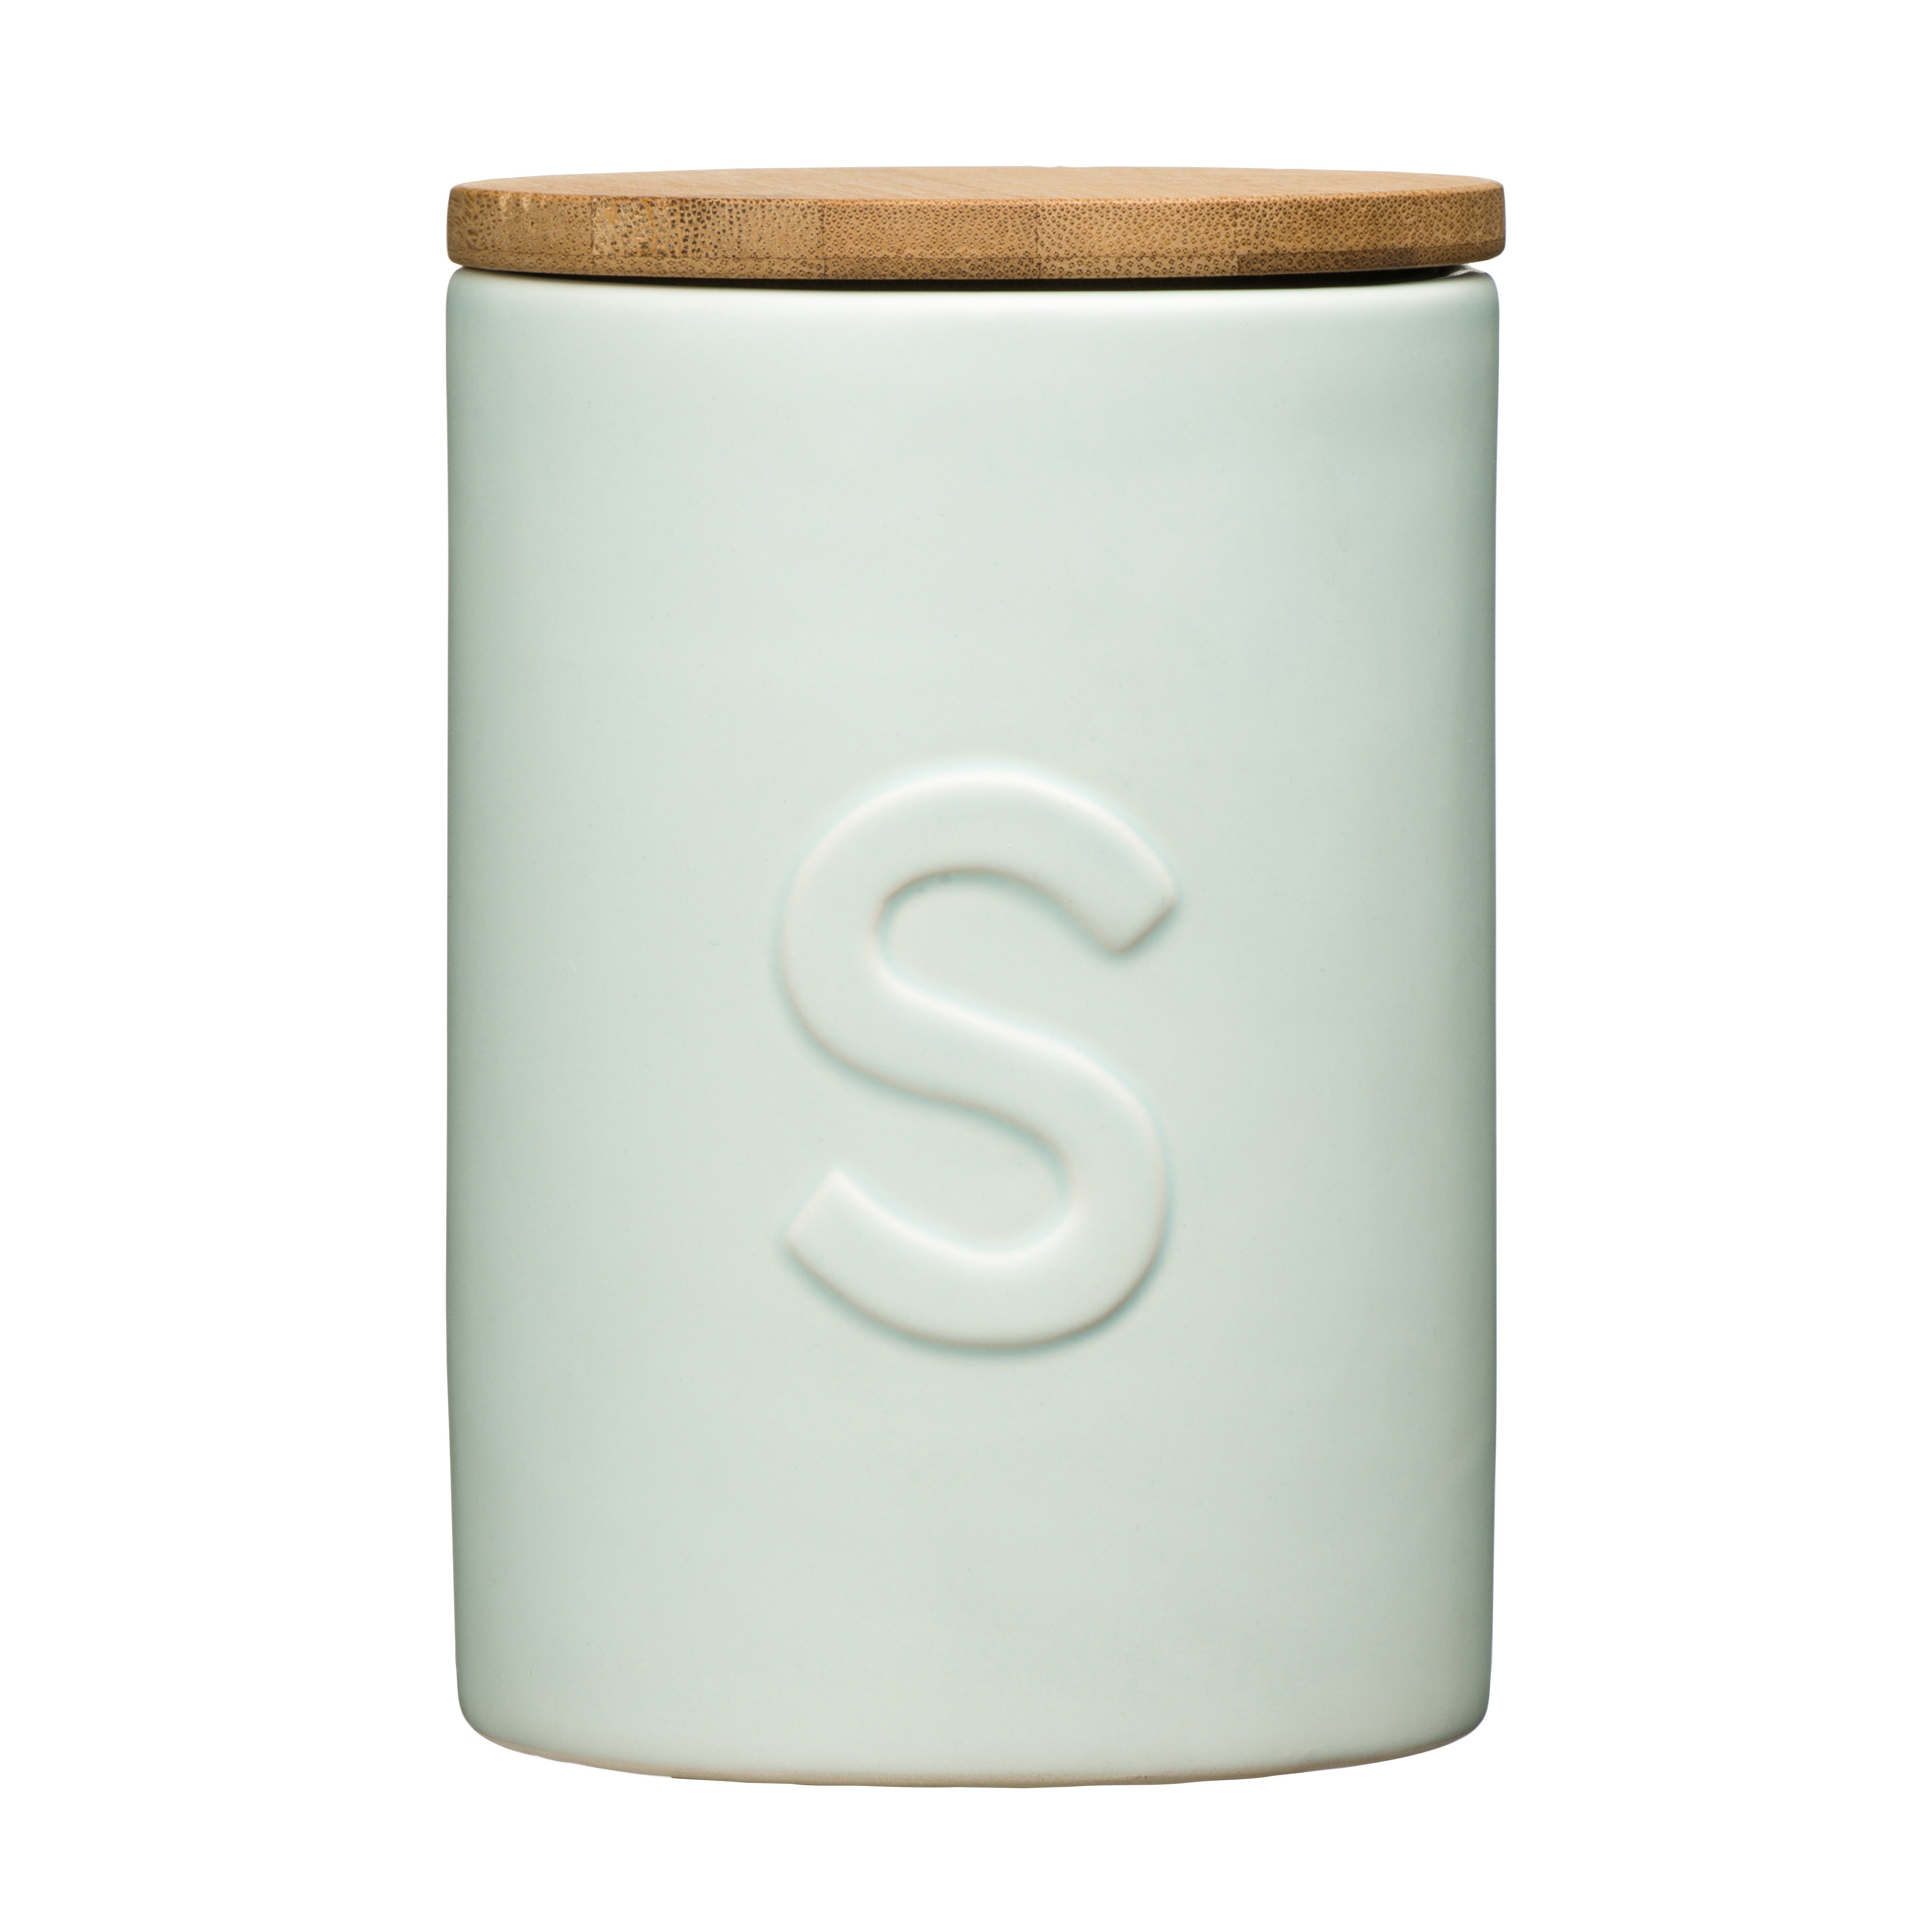 Fenwick Sugar Canister - Pale Blue